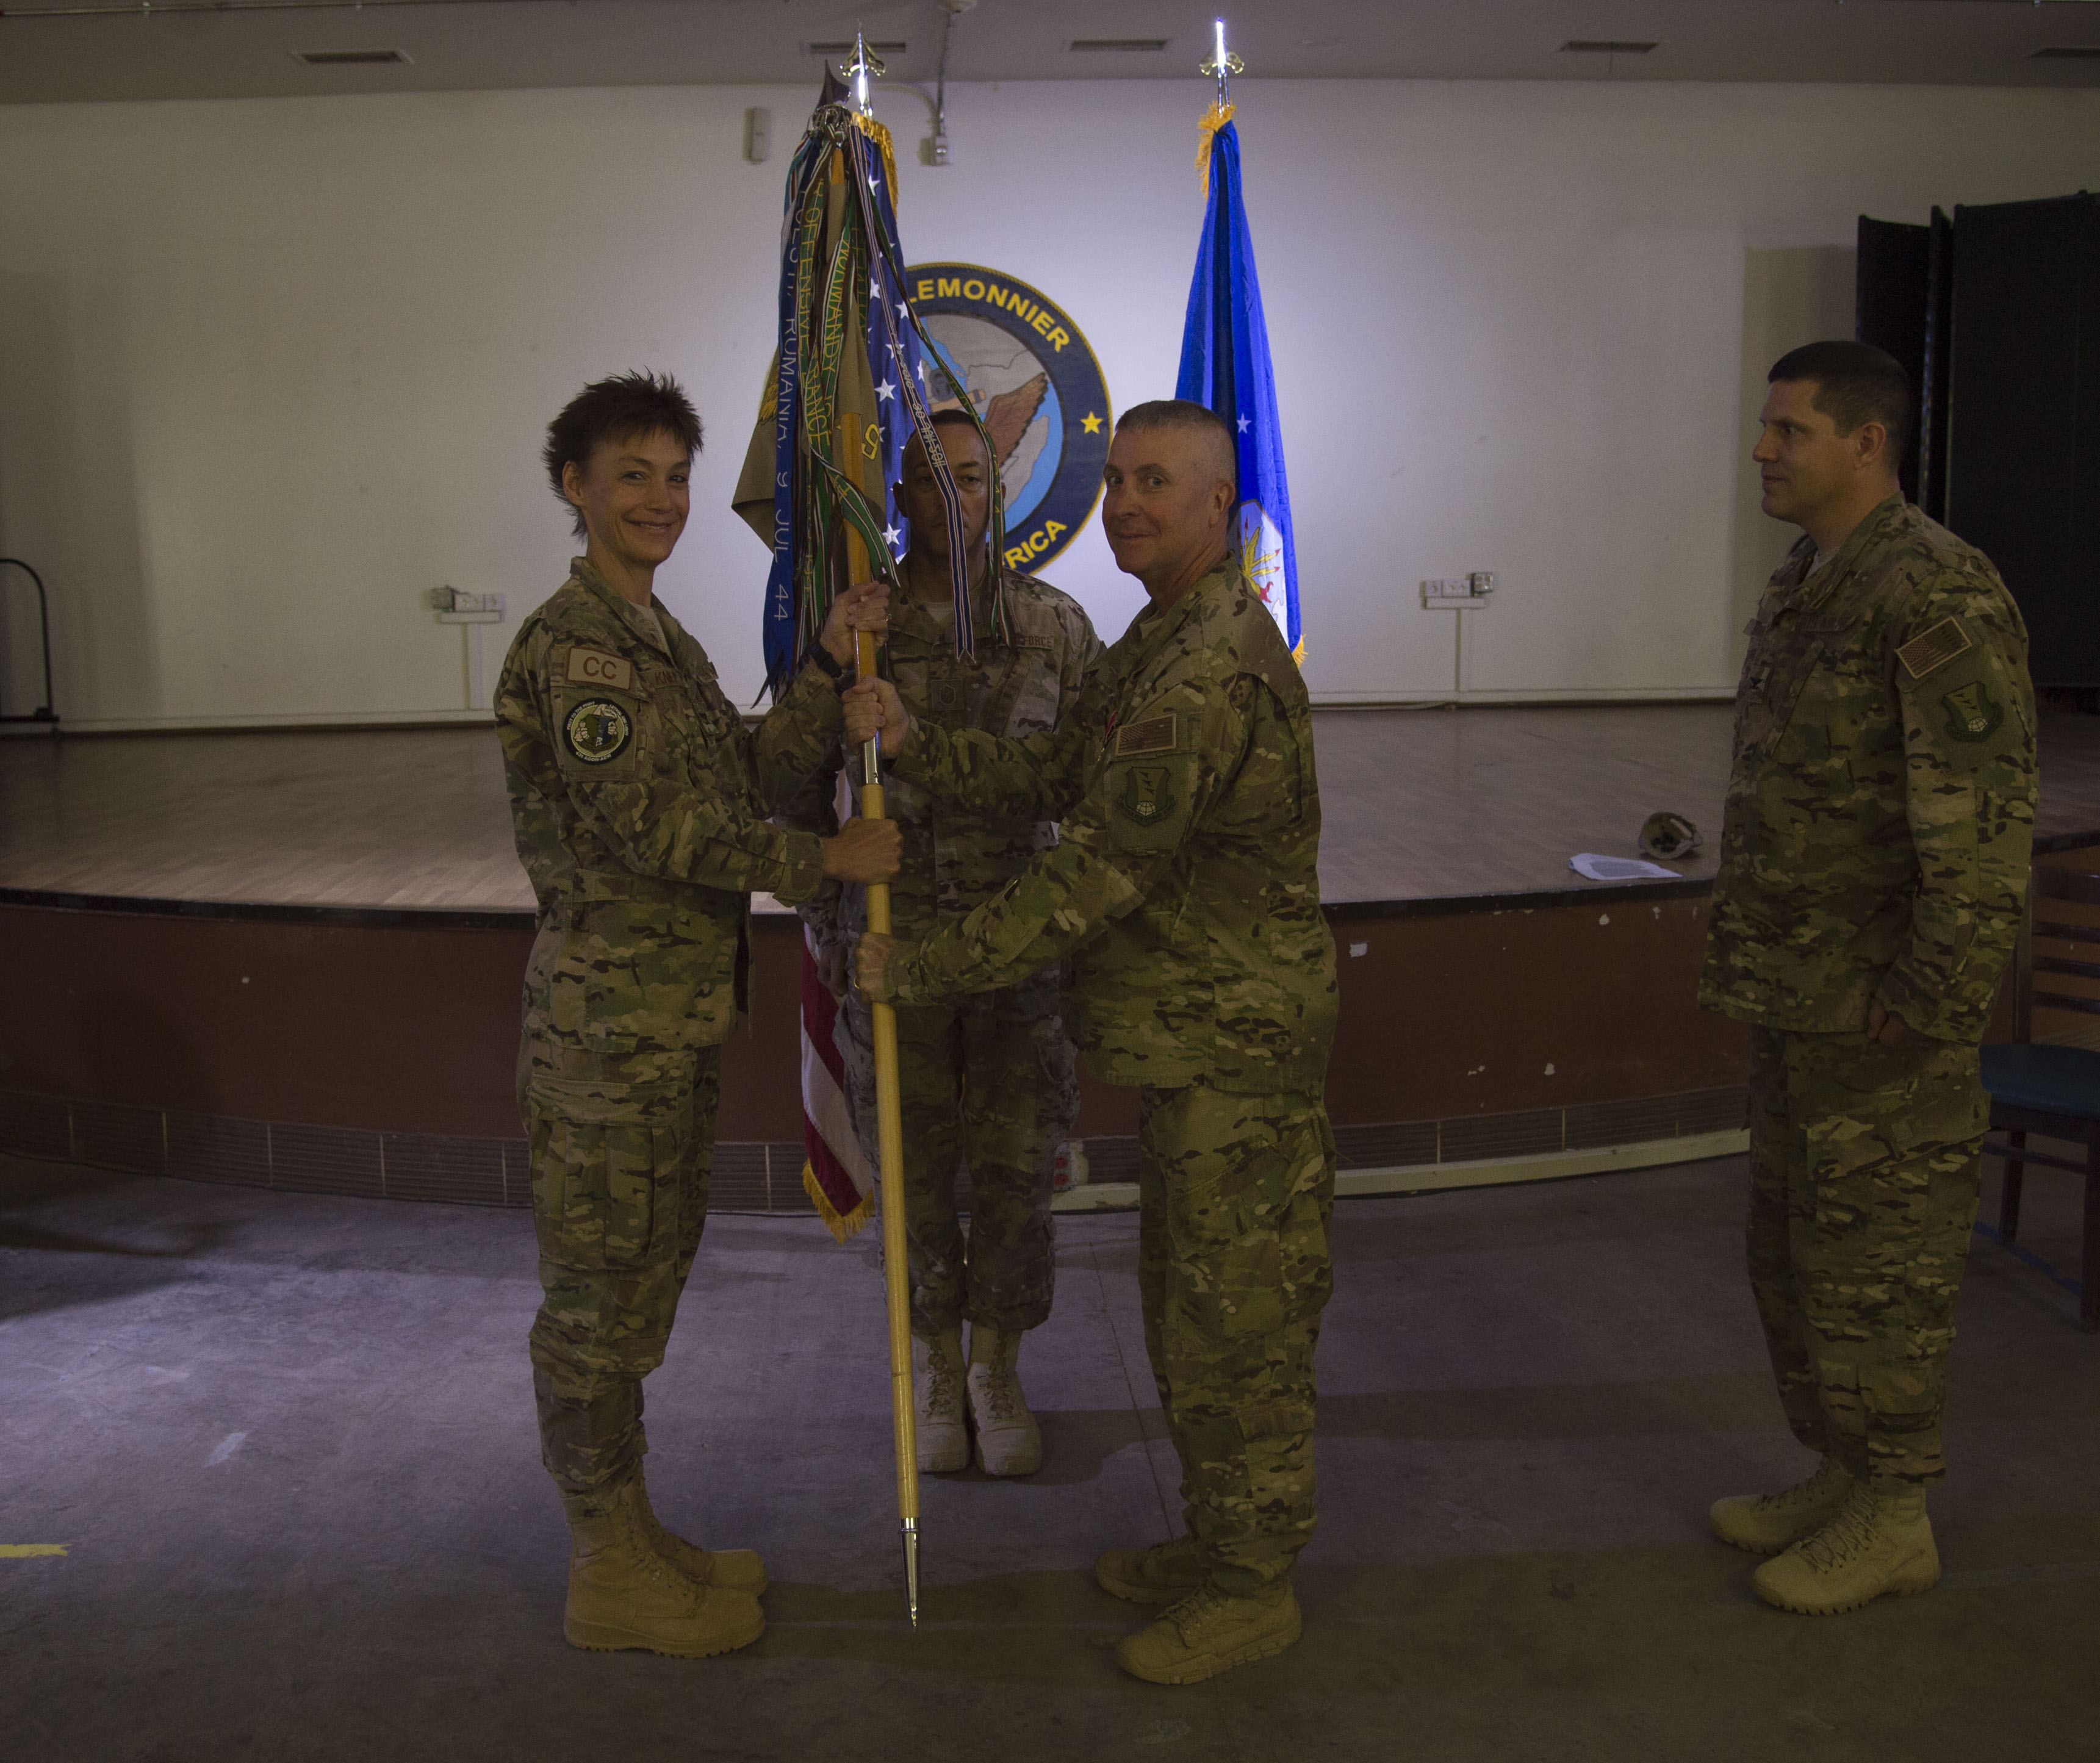 U.S. Air Force Col. Daniel Duffy, 449th Air Expeditionary Group outgoing commander, hands the 449th AEG flag to U.S. Air Force Col. Andra Kniep, 435th Air Expeditionary Wing commander, during the 449th Change of Command ceremony June 6, 2016, at Camp Lemonnier, Djibouti. The passing of the flag is a military tradition signifying the change of authority and responsibility of a unit from one commander to another. (U.S. Air Force photo by Staff Sgt. Eric Summers Jr.)